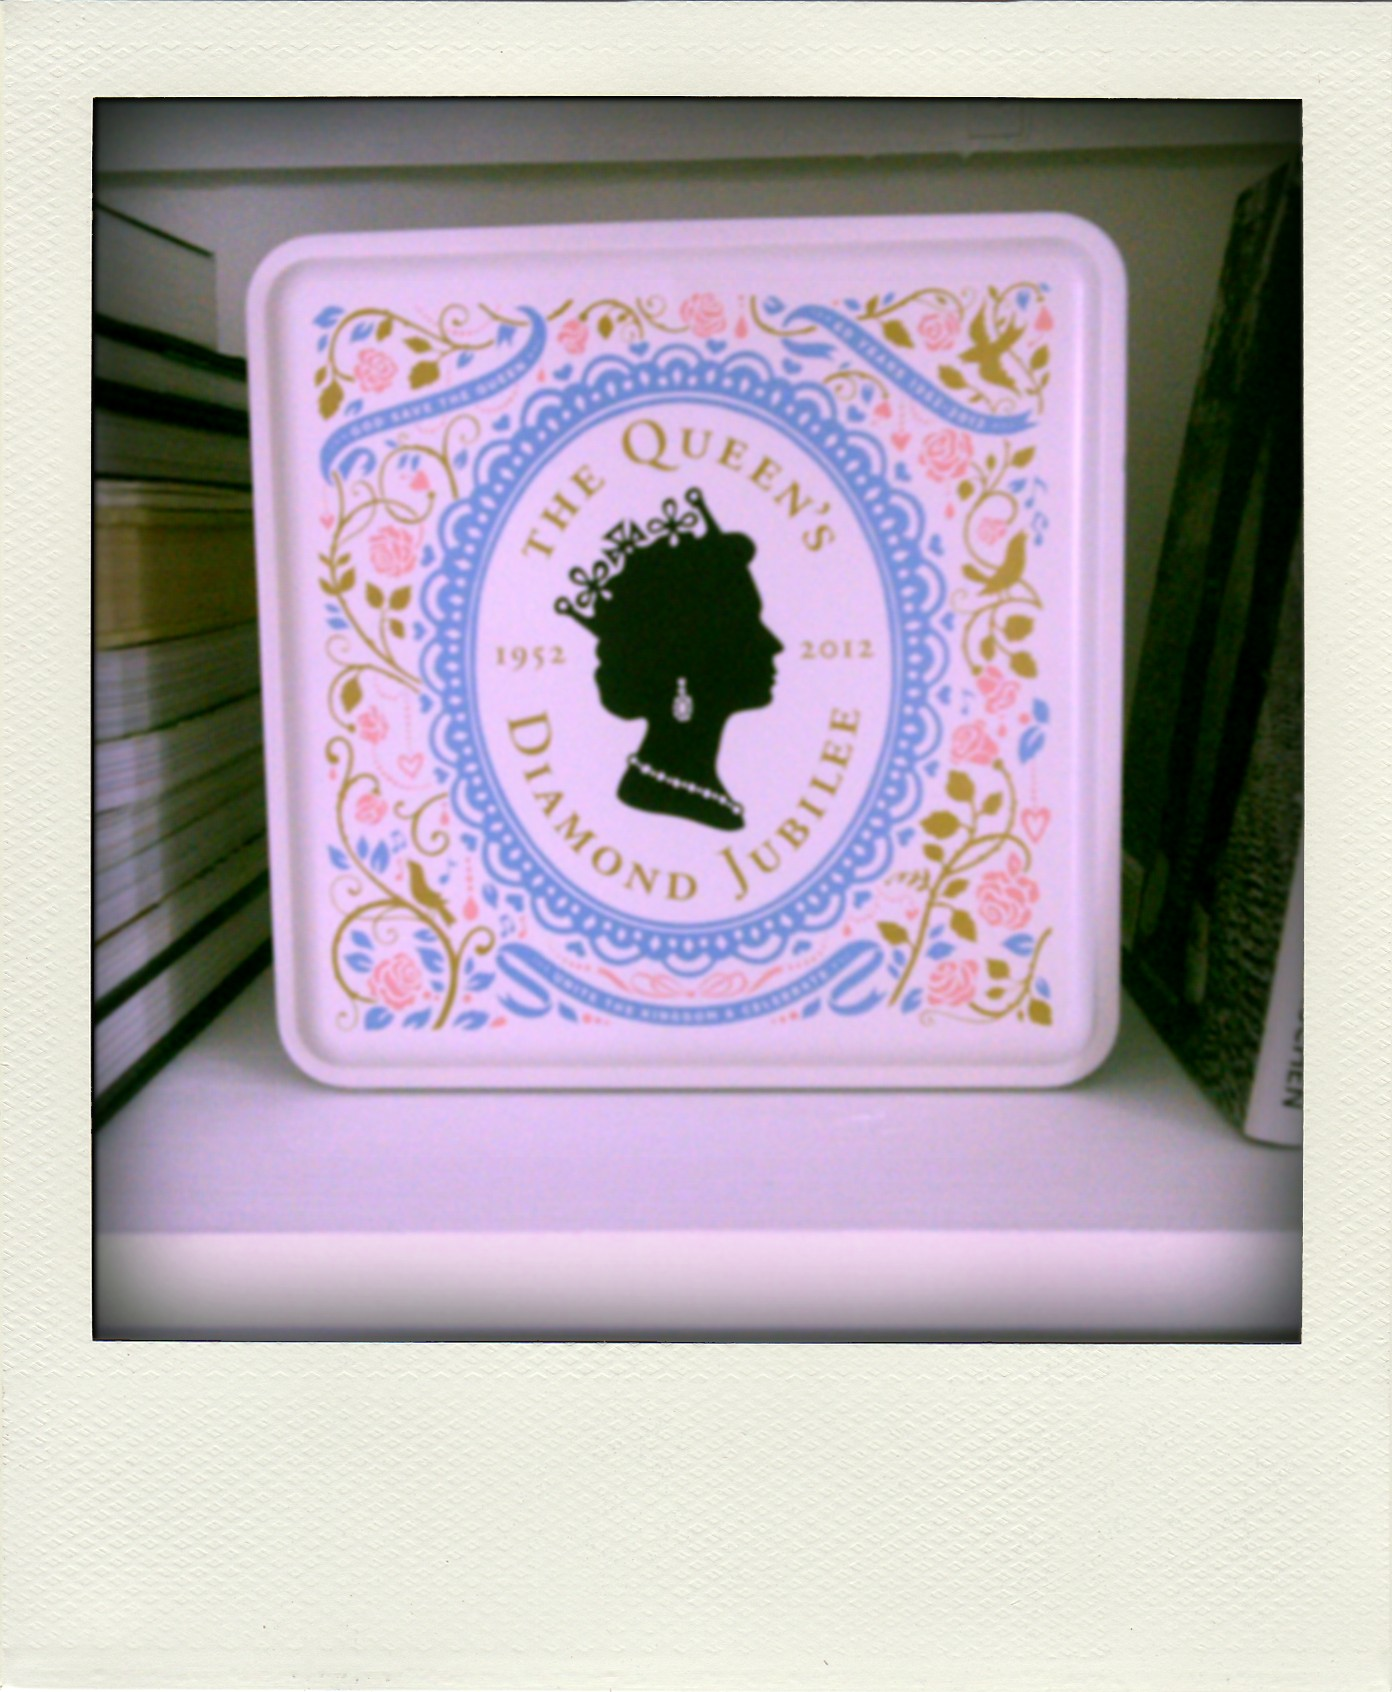 Marks & Spencer Diamond Jubilee tin